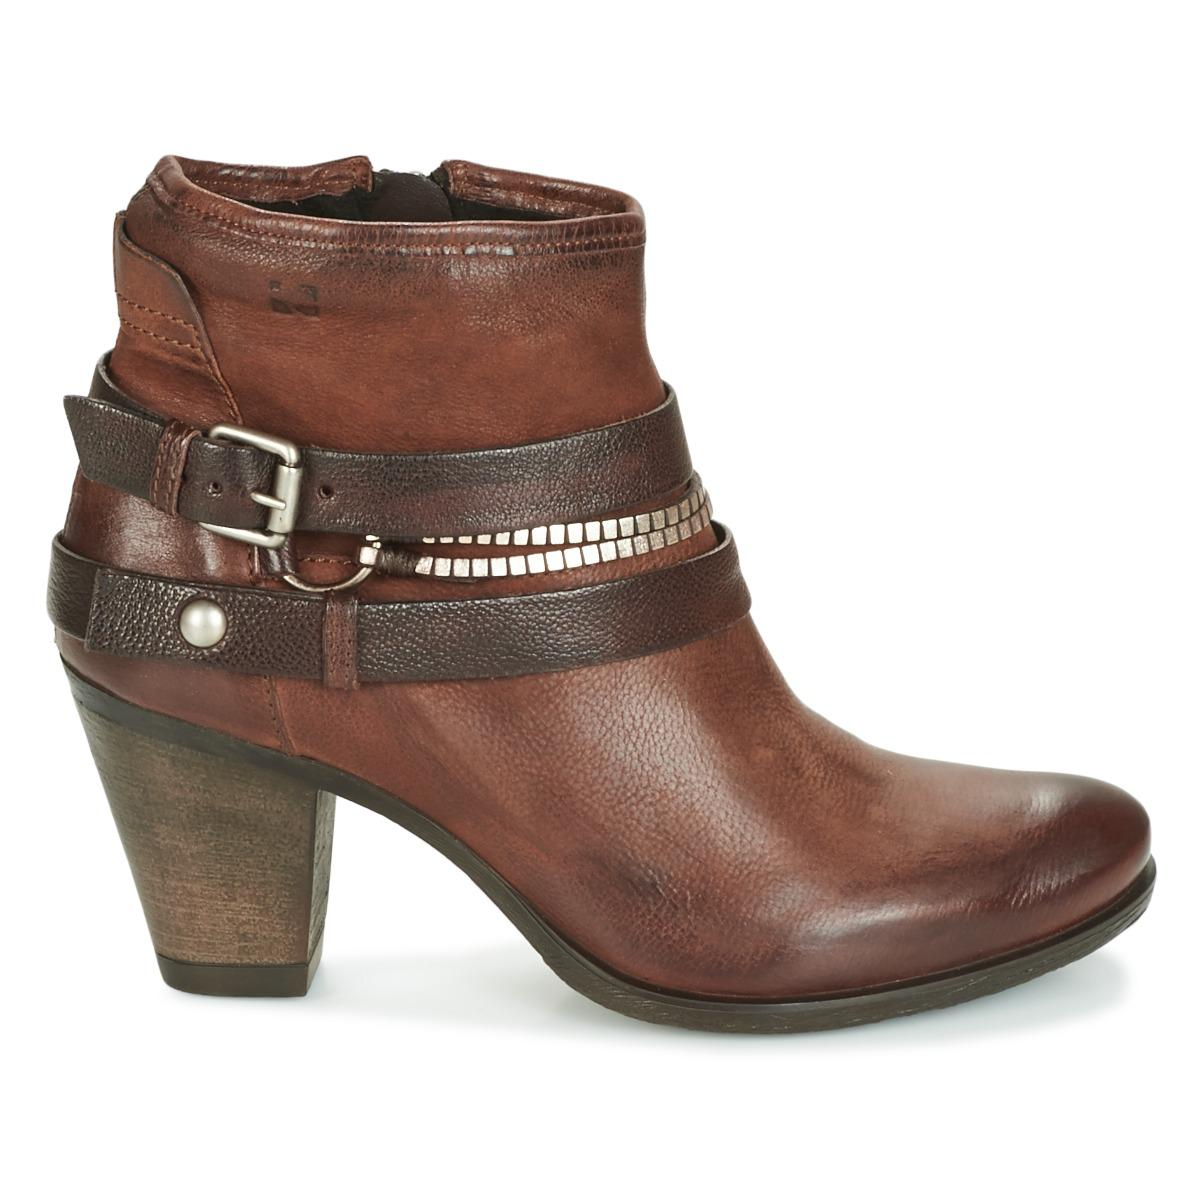 Dream in Green GHALEB women's Low Ankle Boots in Classic Cheap Price Get Online Cheap 100% Original Buy Cheap Choice Sale Best Sale RcTmKo